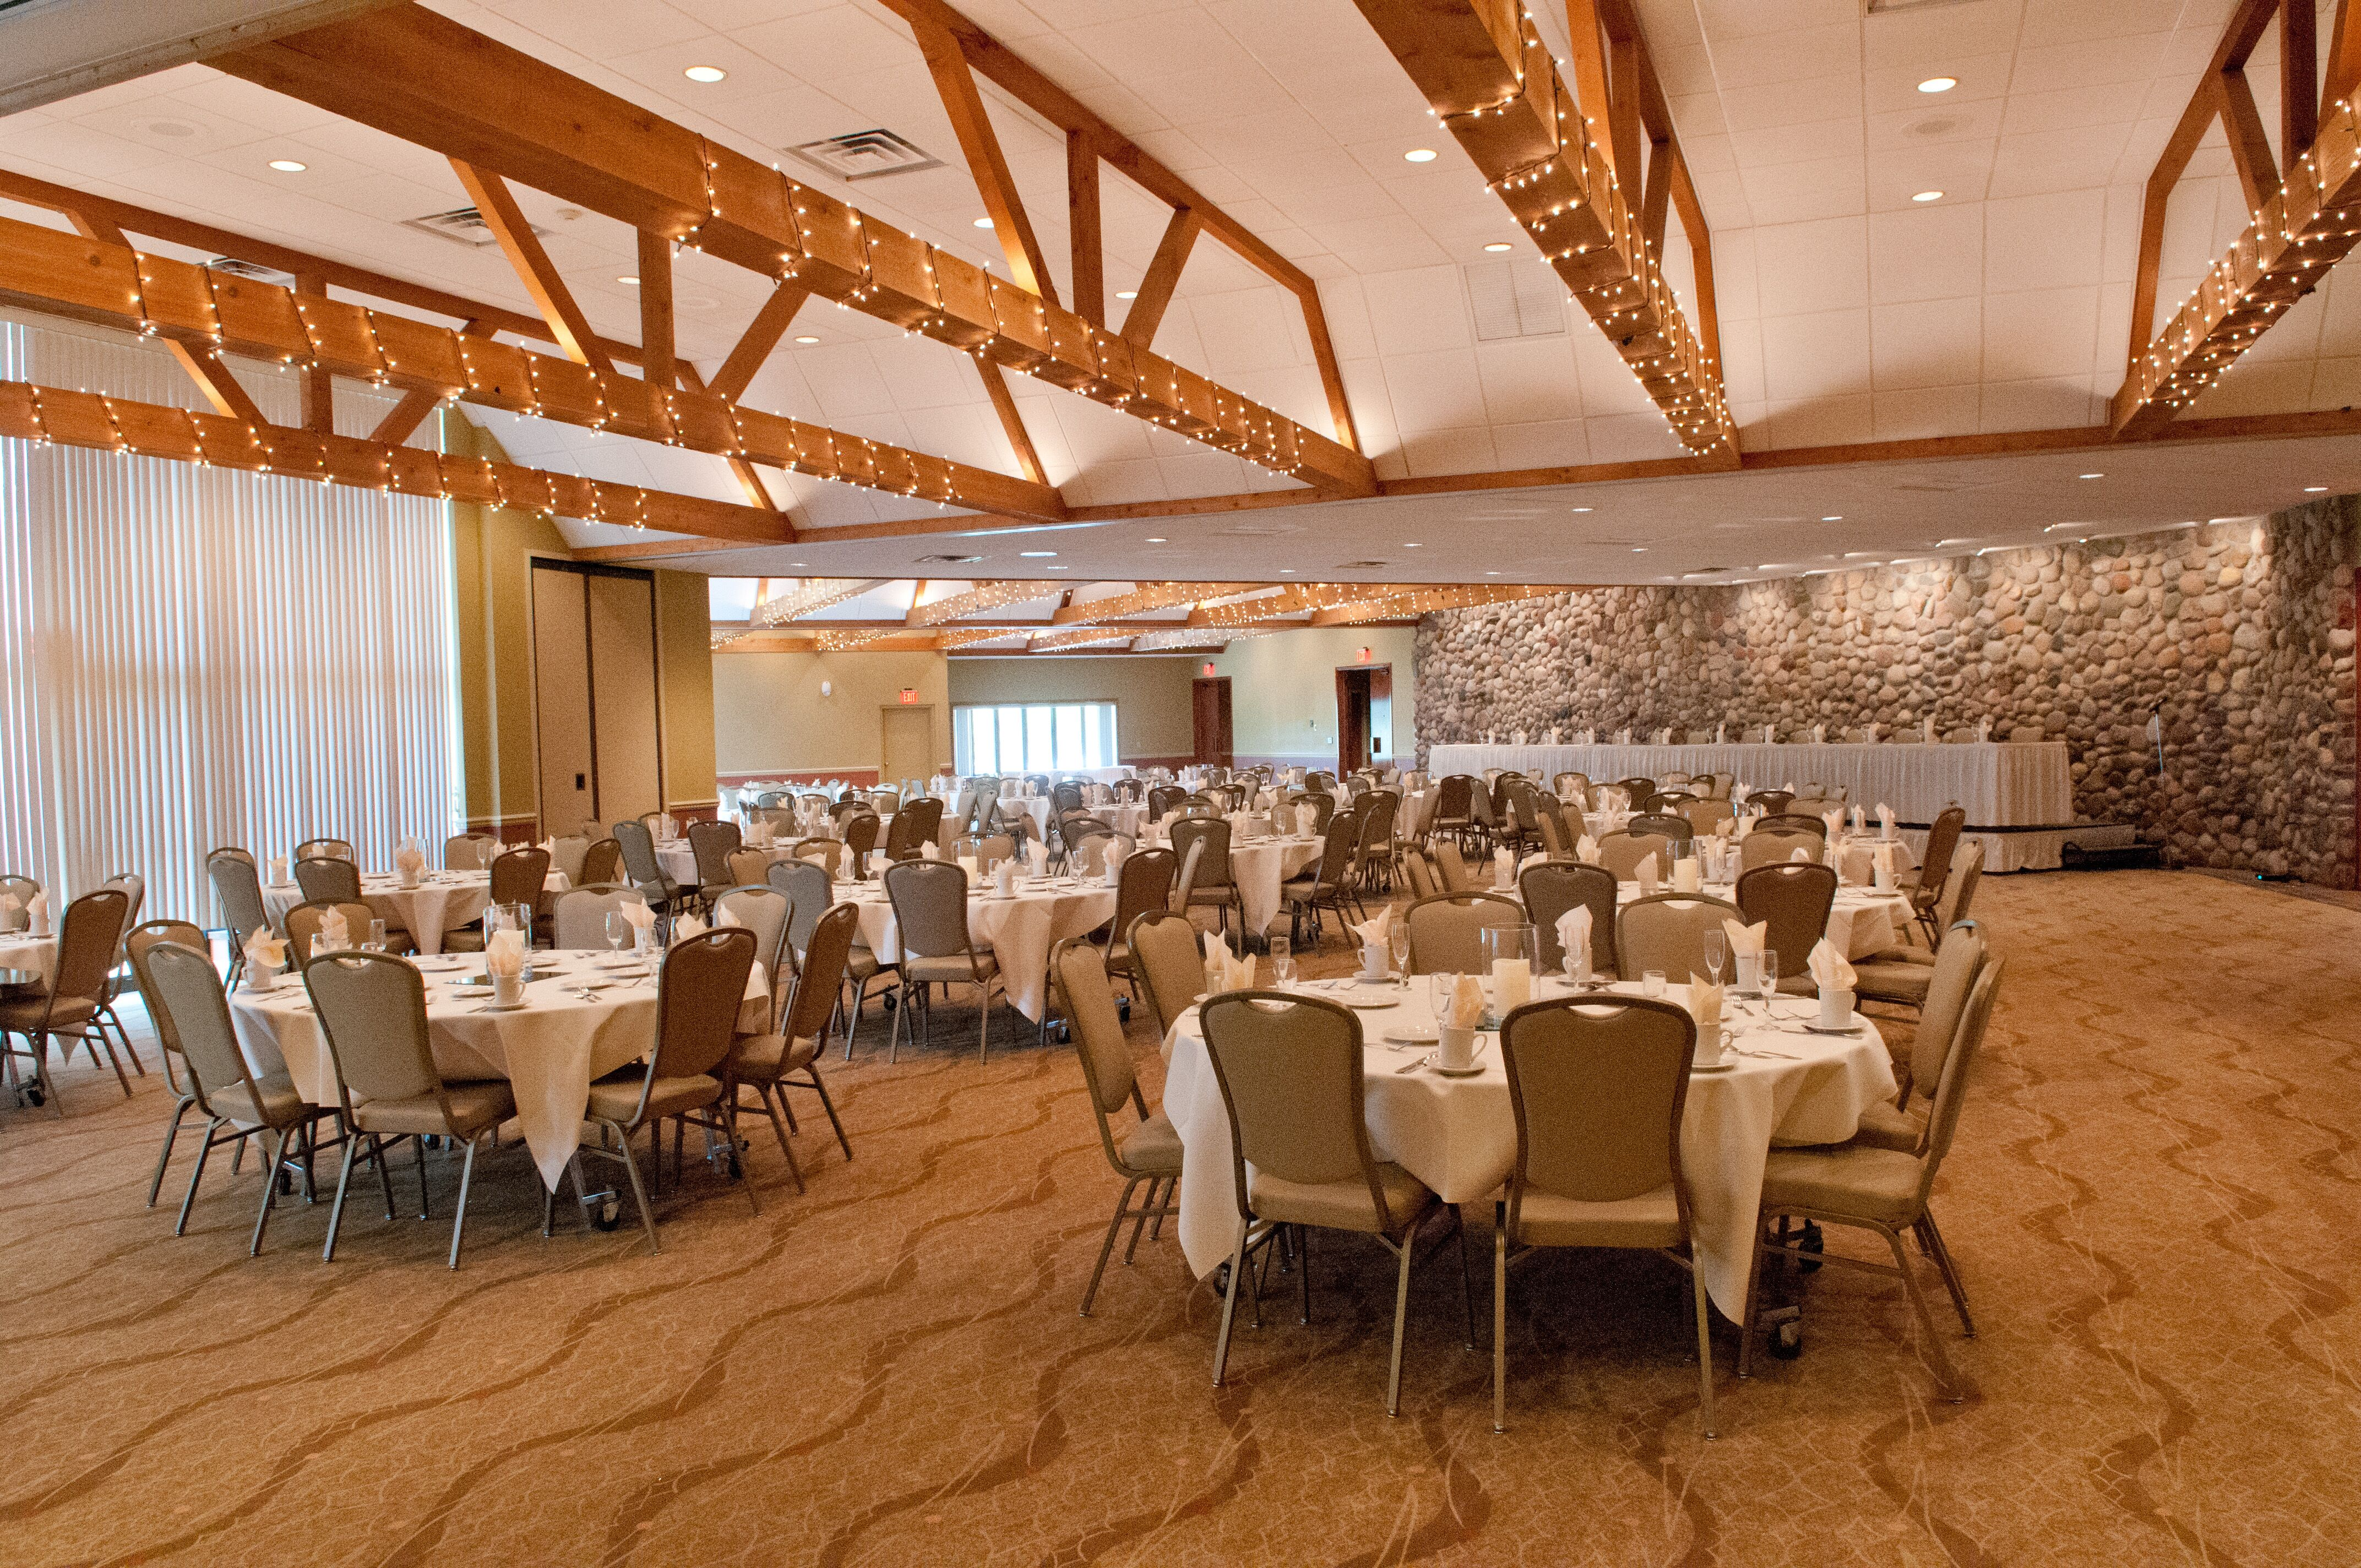 Wedding Venues in West Bend, WI - The Knot